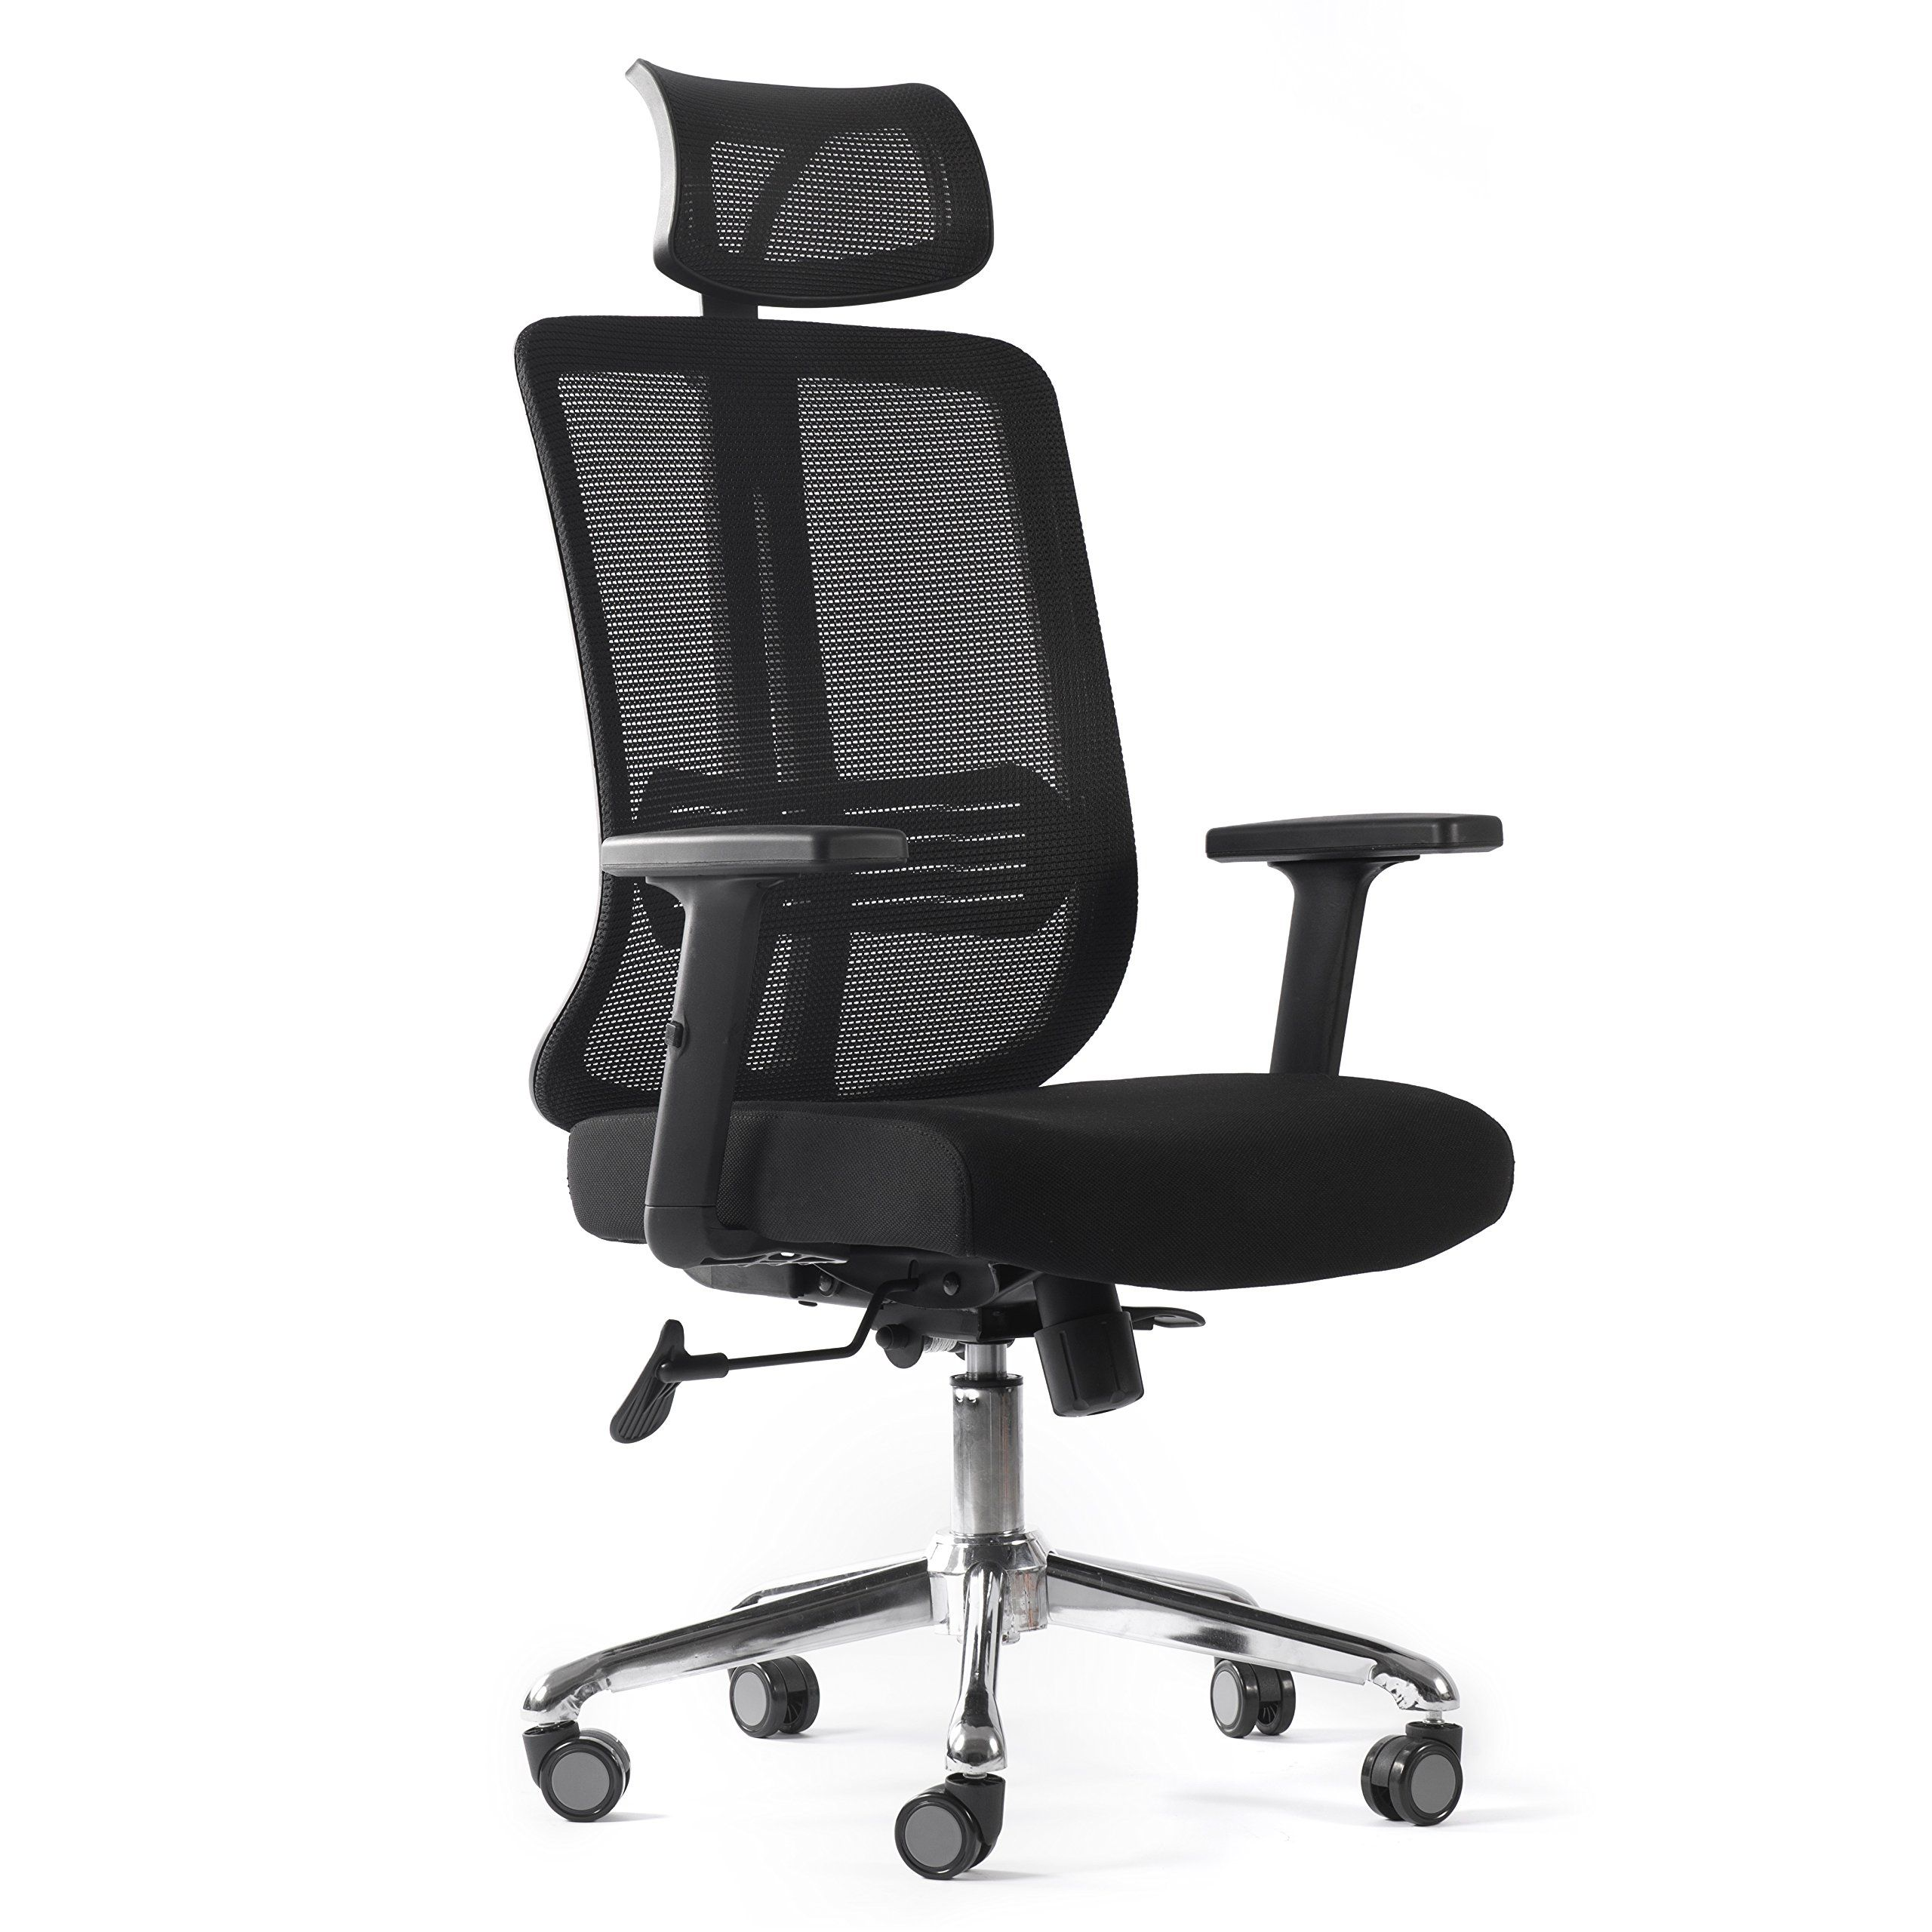 of chair used back chairs computer highest kneeling price and cost small desk full work rated low black top leather support size for big seat white lumbar cabinets filing good ergonomic with office